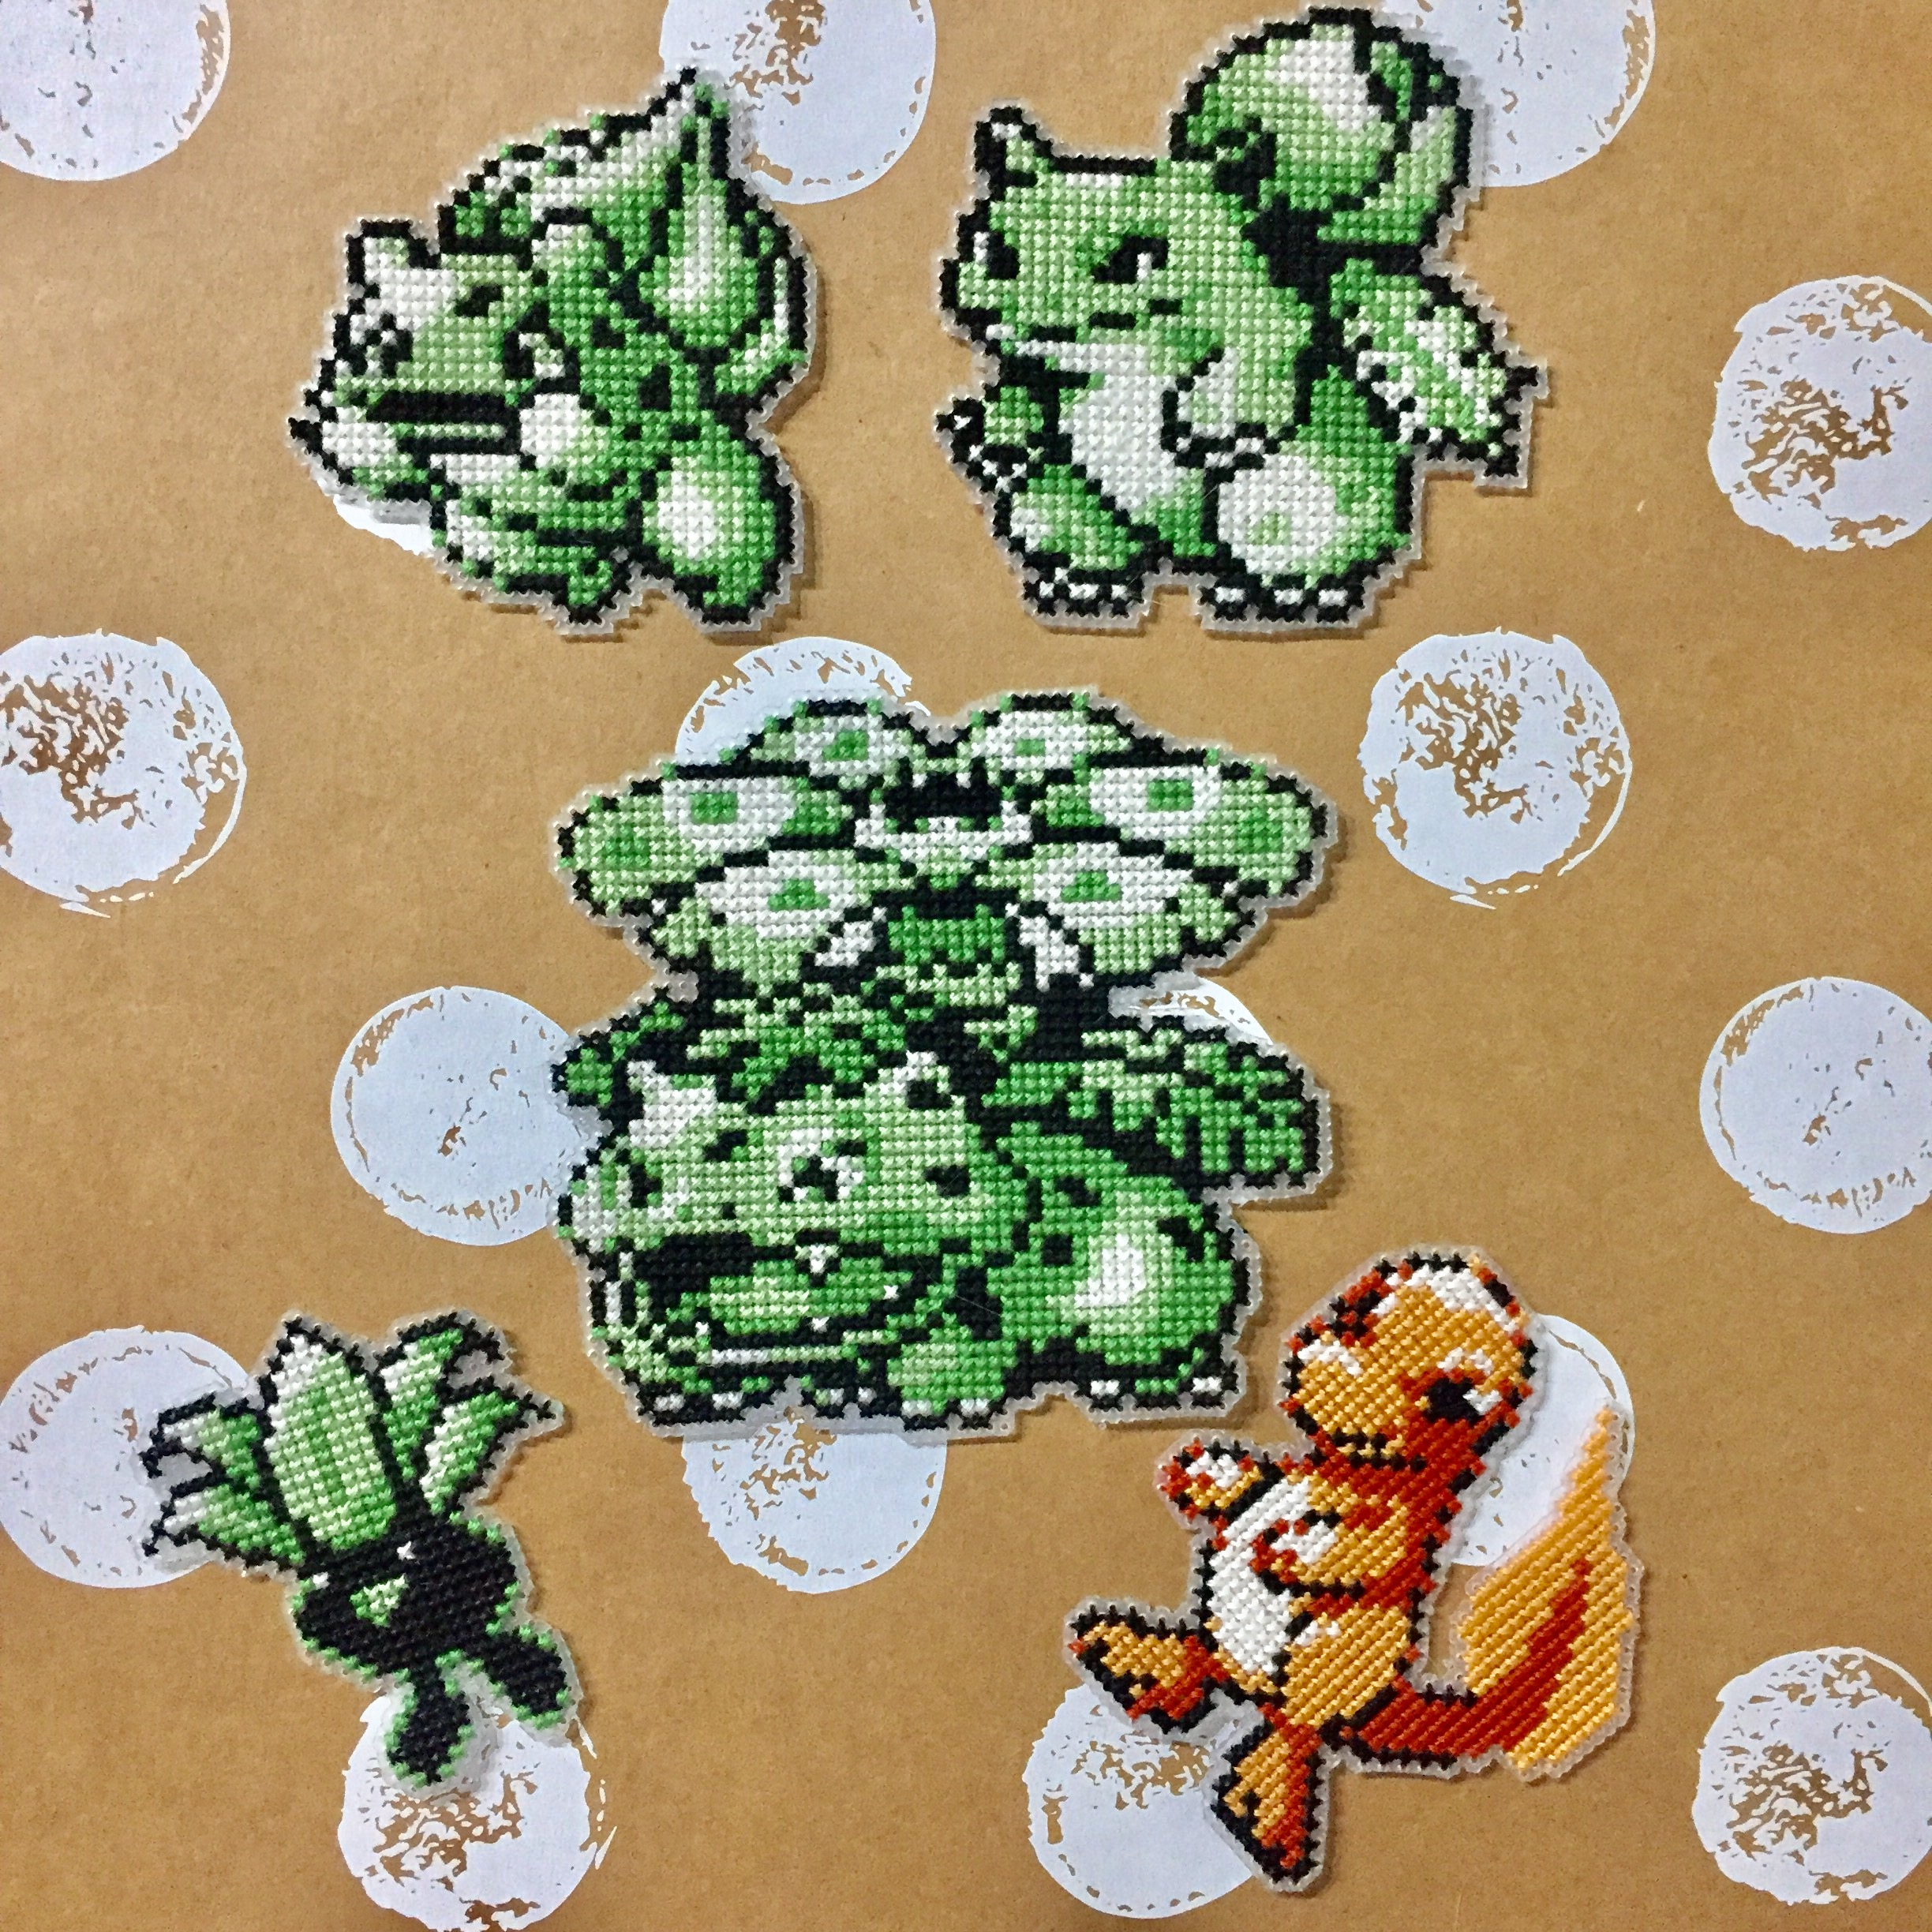 Pokemon stitched on 14 ct plastic Aida with 2 strands of DMC floss